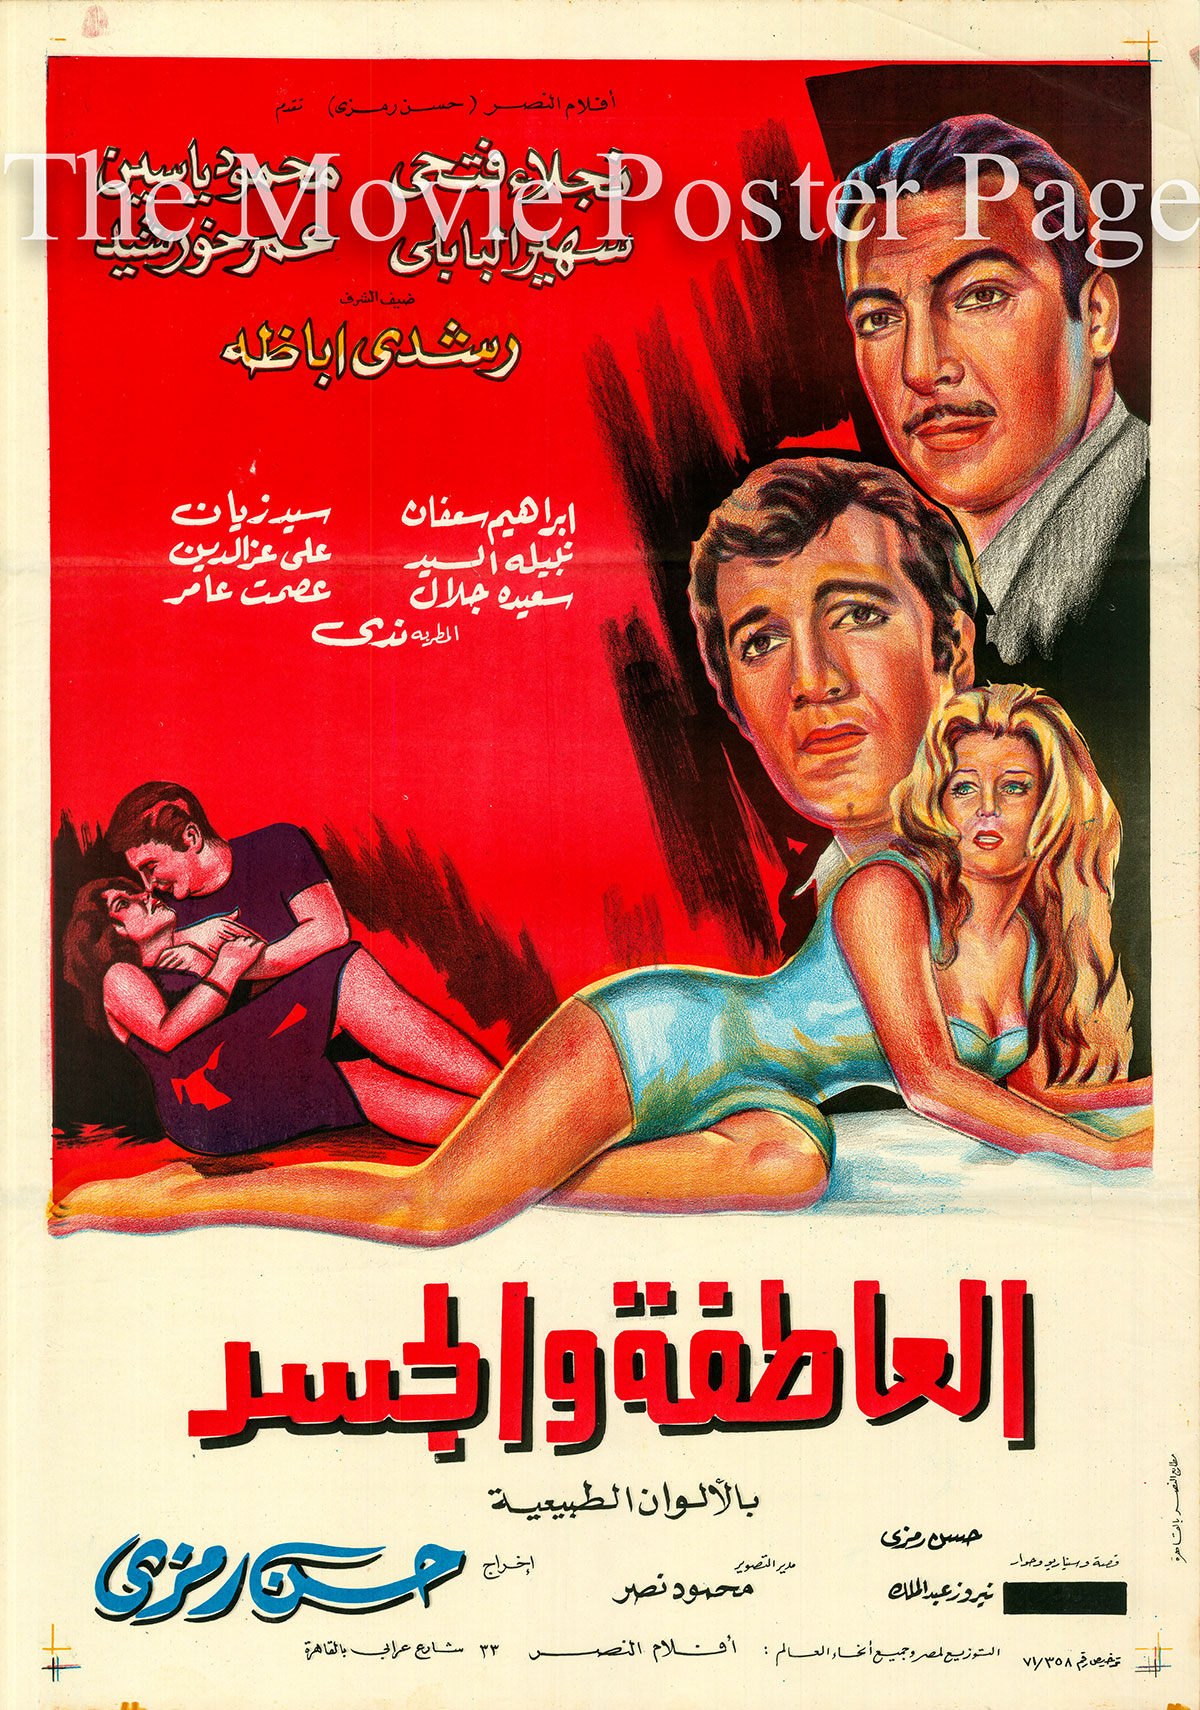 Pictured is an Egyptian promotional poster for the 1971 Hassan Ramzi film Emotions and the Body starring Naglaa Fathy.